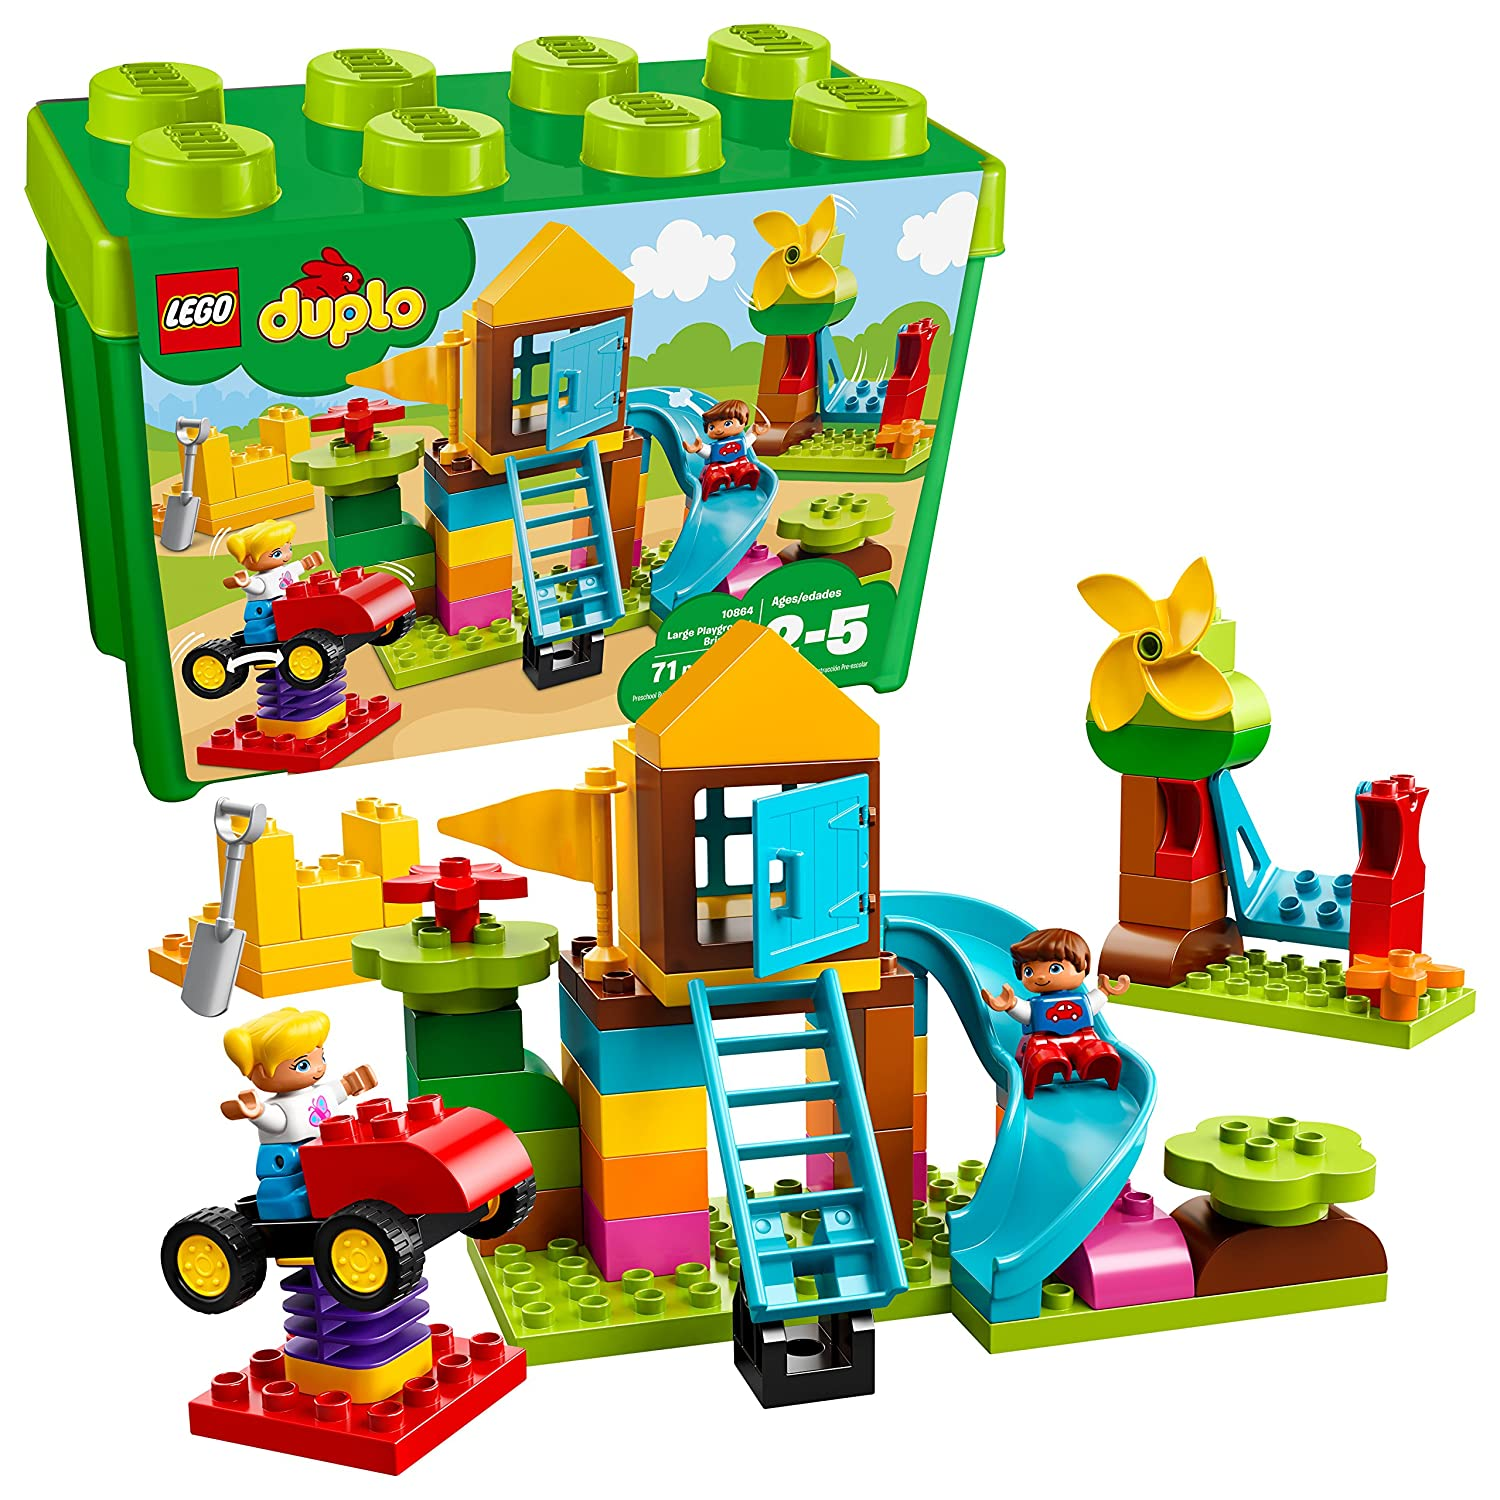 Top 9 Best Lego Duplo Sets Reviews in 2019 2